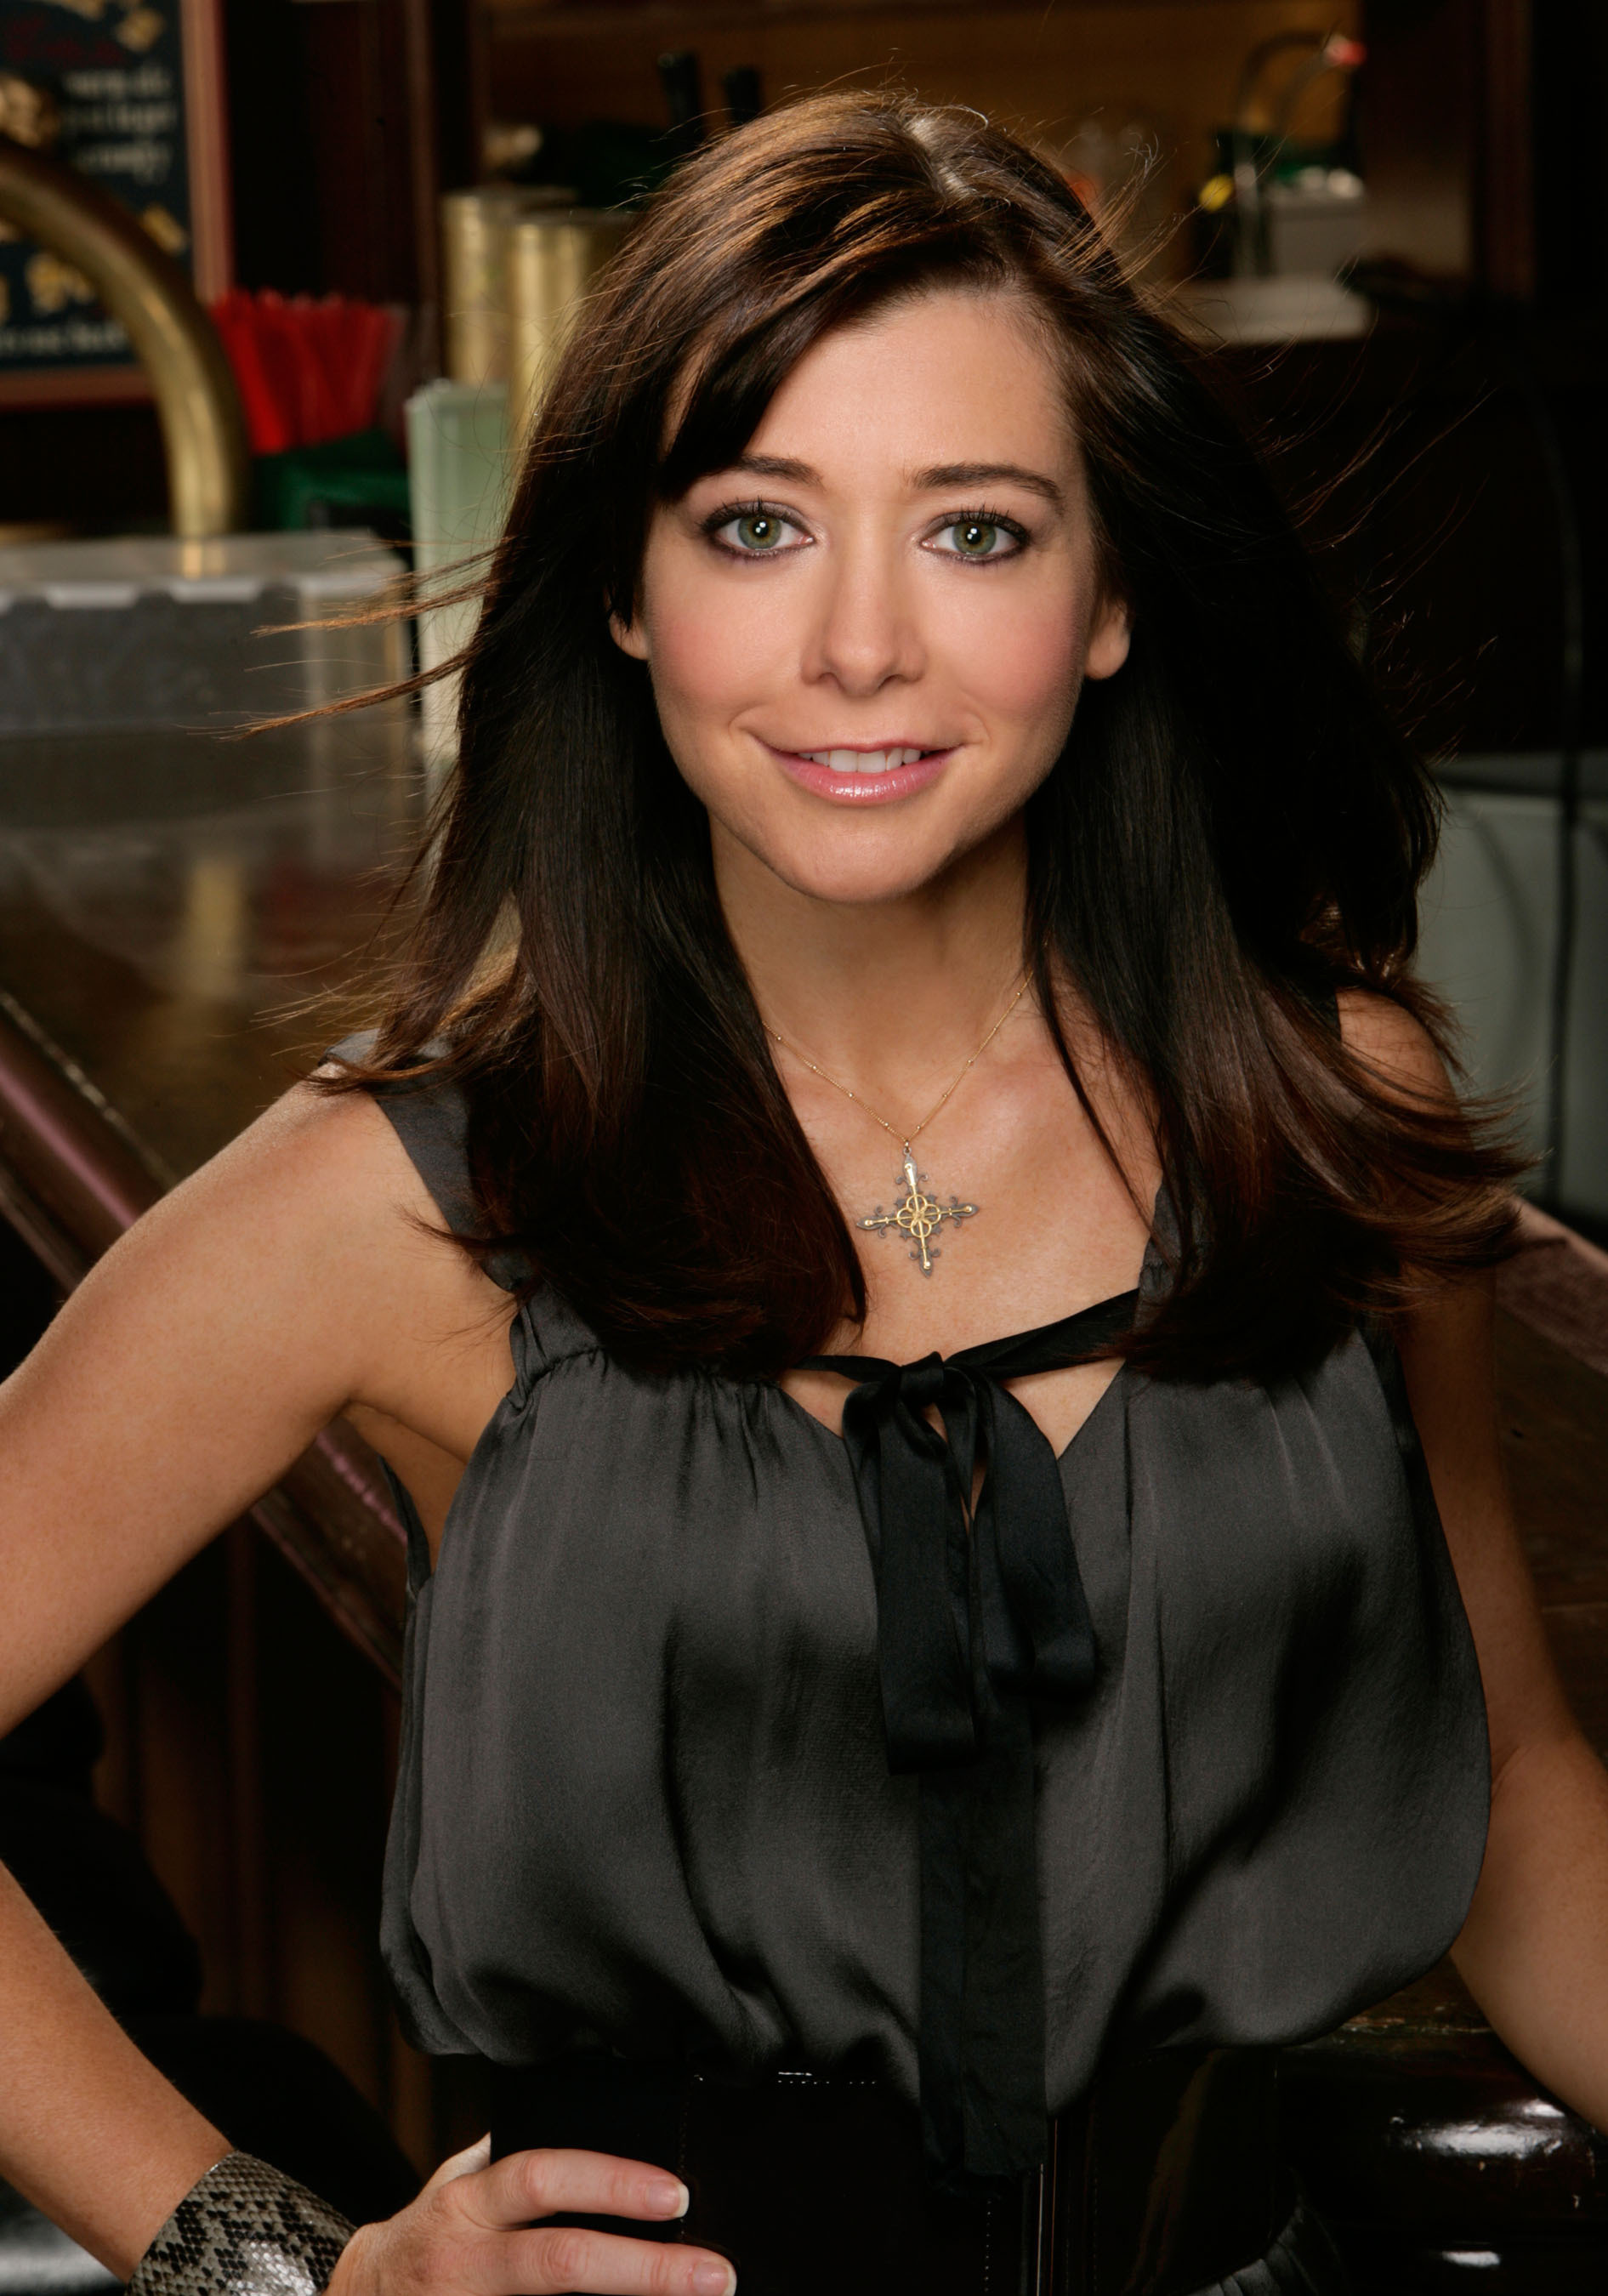 HIMYM'S Alyson Hannigan is New Face of PANDORA Jewelry